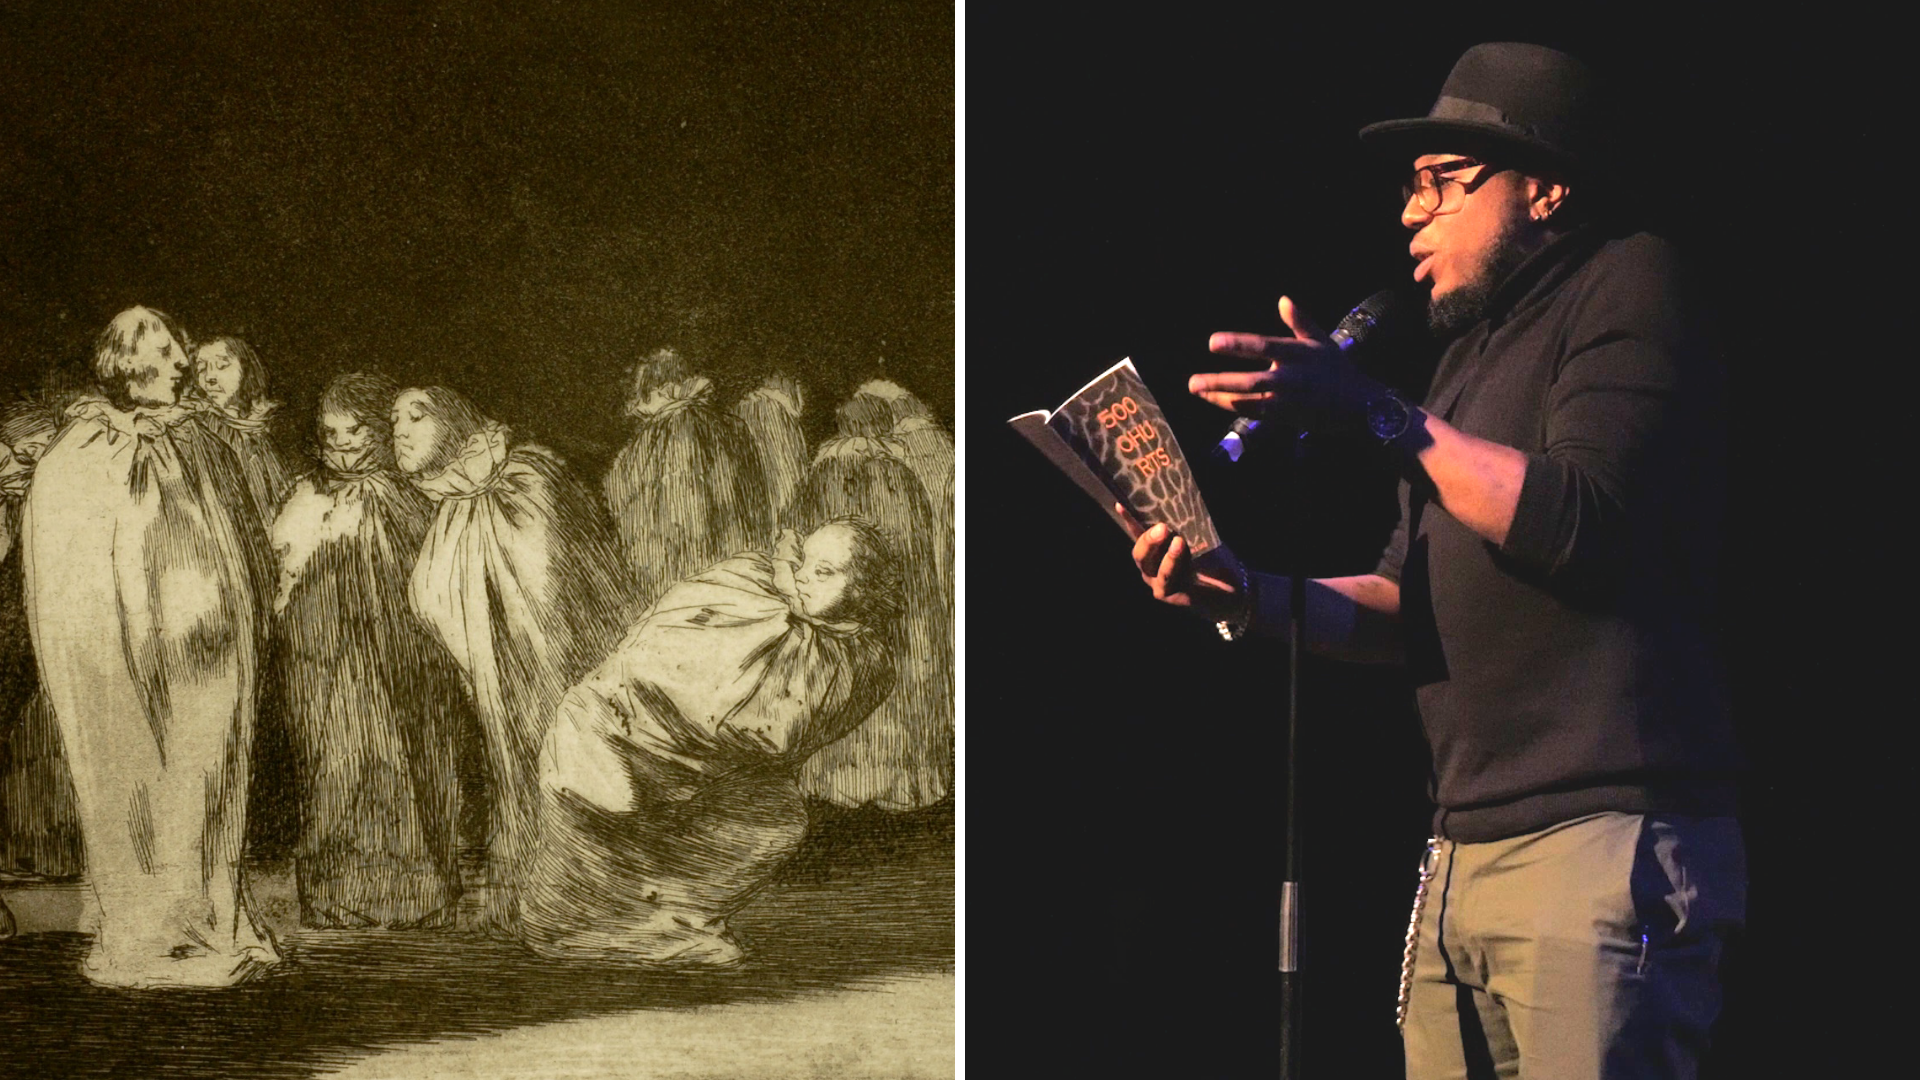 A detail of Goya's print, showing people in sackcloths in darkness; Adrian speaking on stage, reading from his pamphlet.